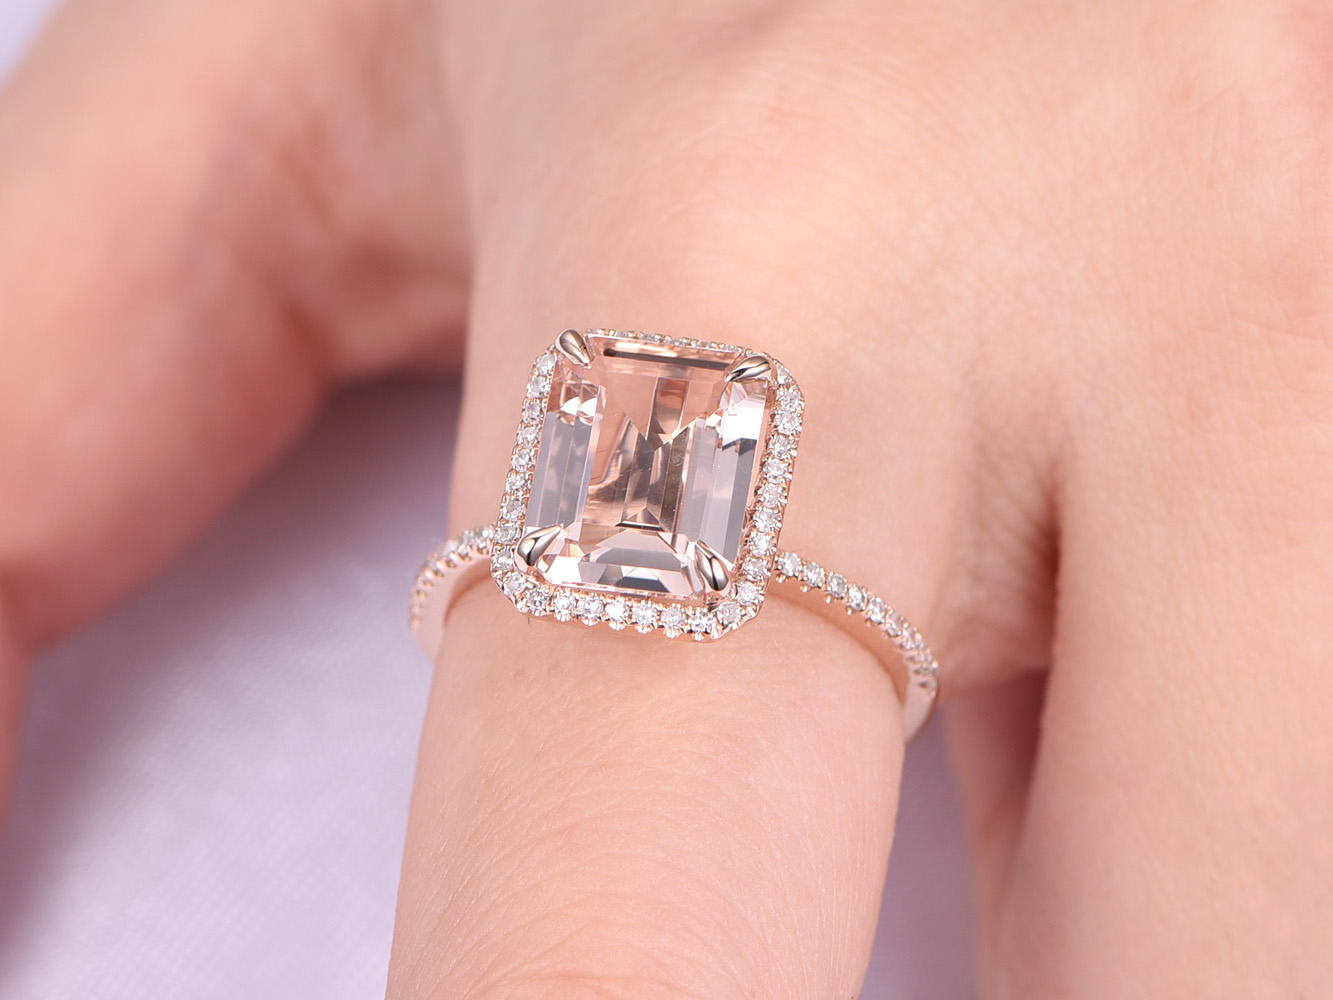 fb24bc2b40124 Details about Emerald Cut 8x10MM Natural Pink Morganite Diamond 14K Gold  Halo Engagement Ring